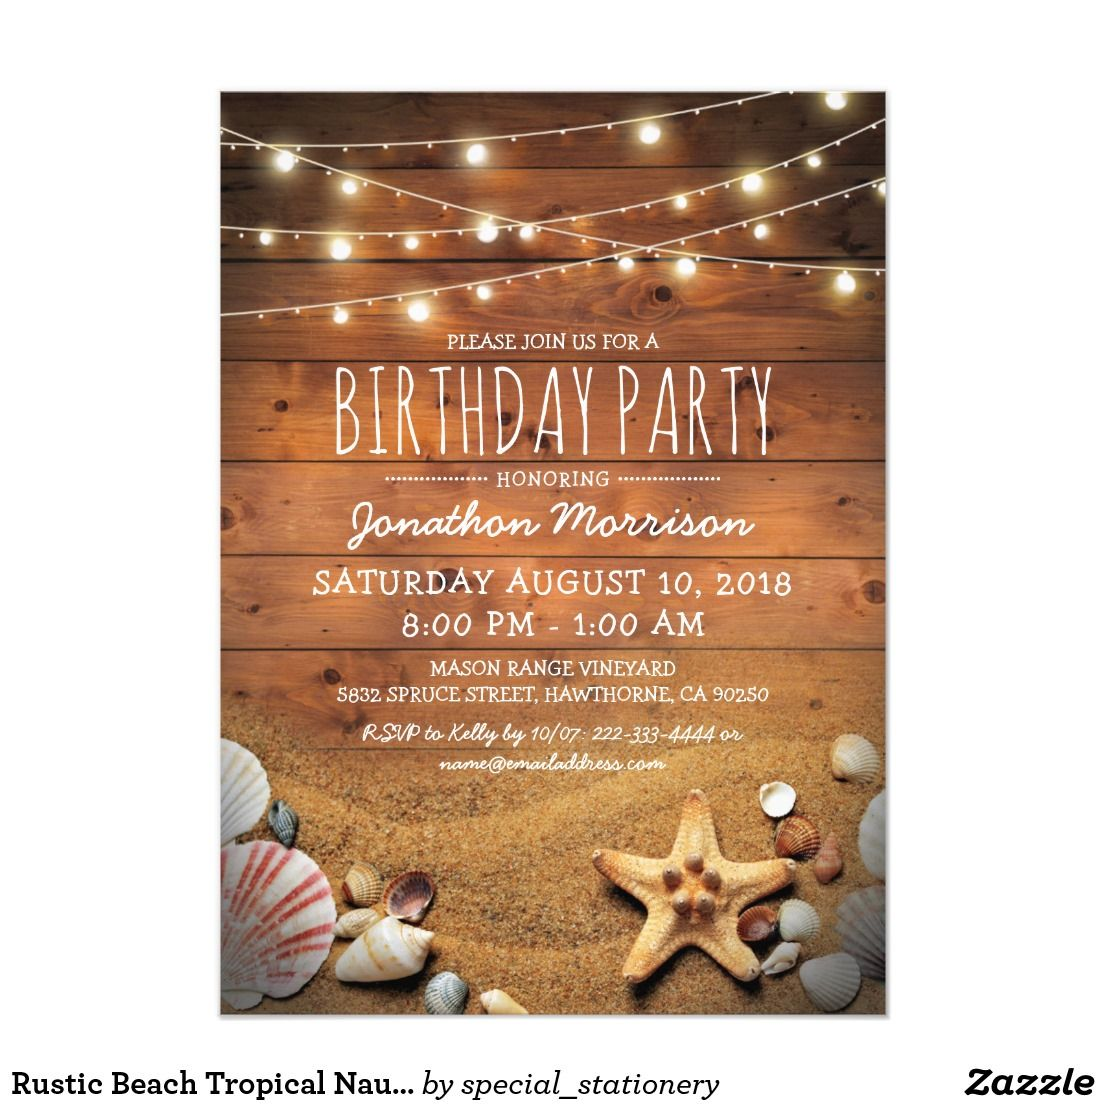 Rustic Beach Tropical Nautical Birthday Party Card Adult Theme Invitations Featuring A Wood Barn Background Twinkle String Lights